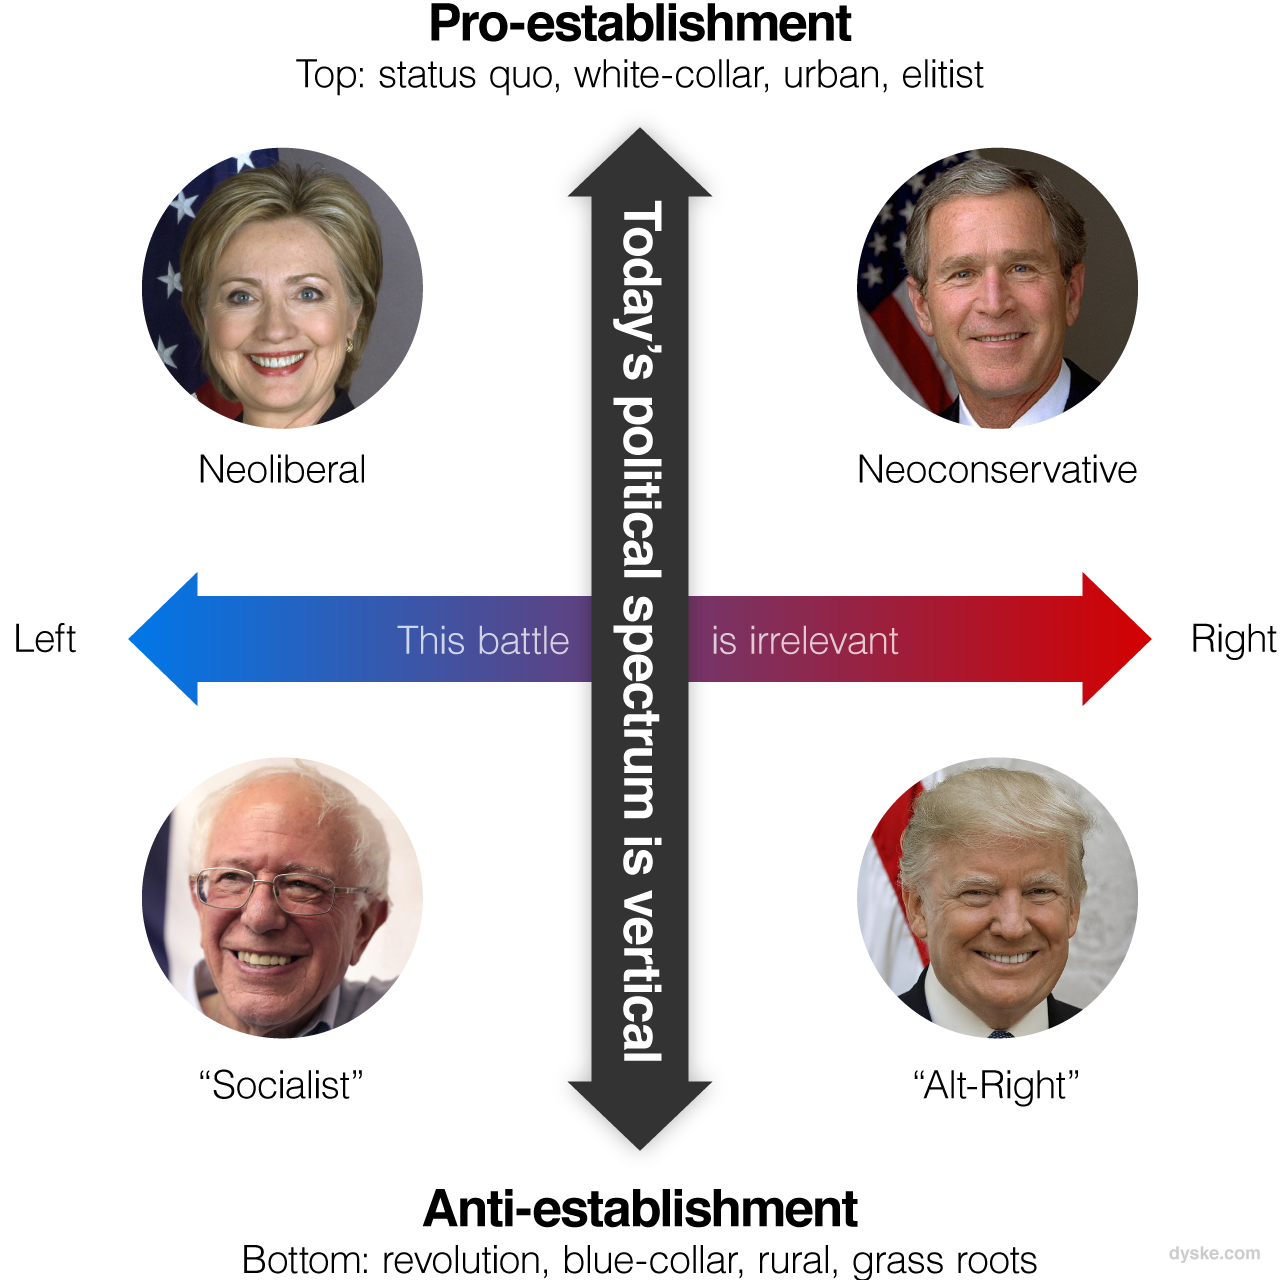 Today's political spectrum